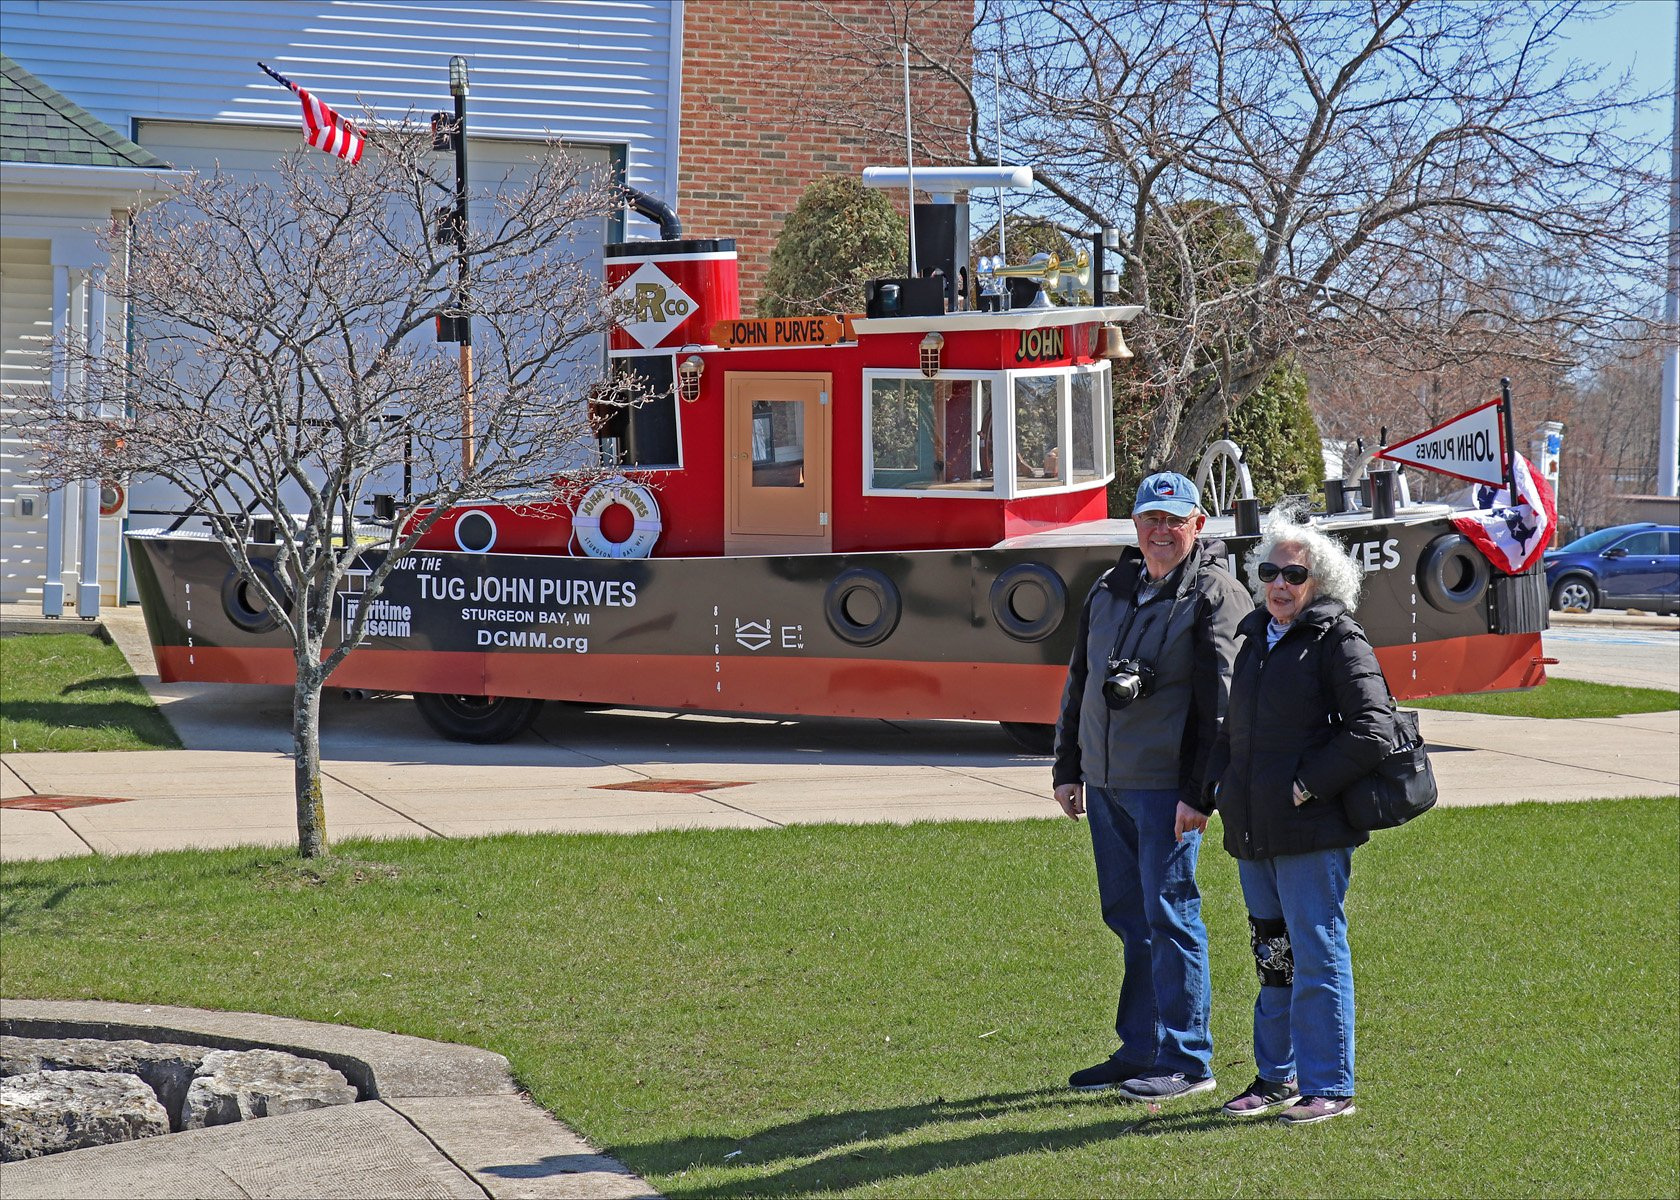 Photo friends Howard Vrankin and Linda Lee at the Door County Maritime Museum